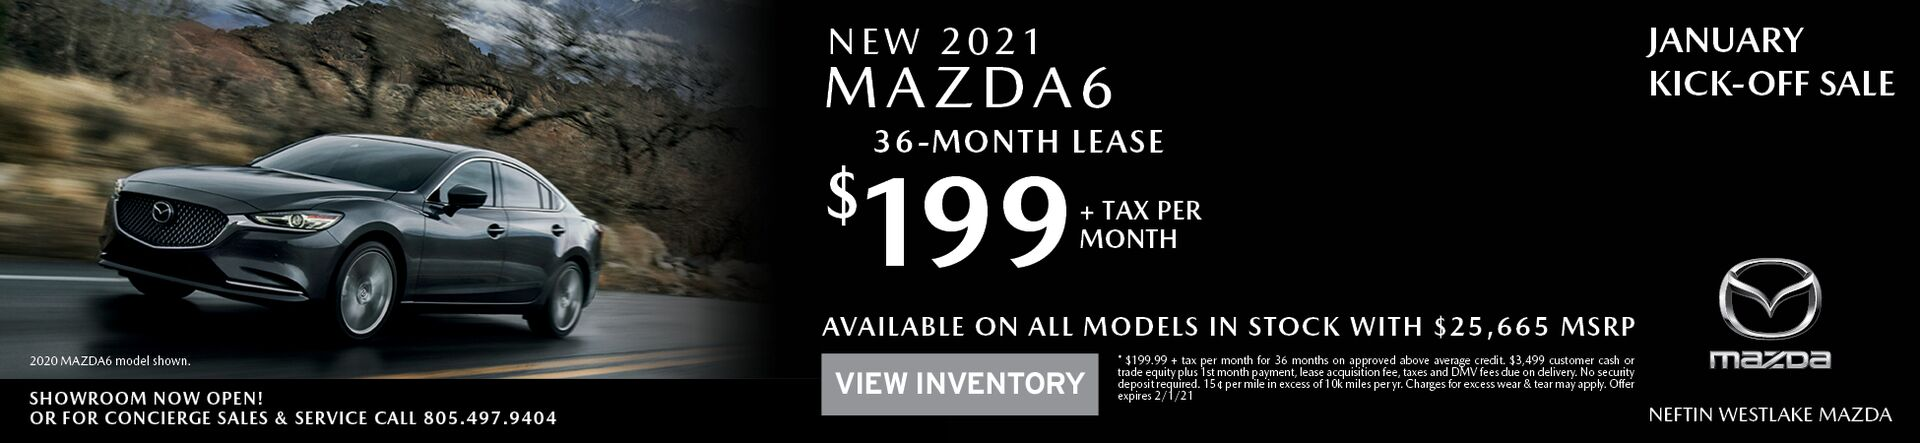 January '21 Mazda6 Lease Offer